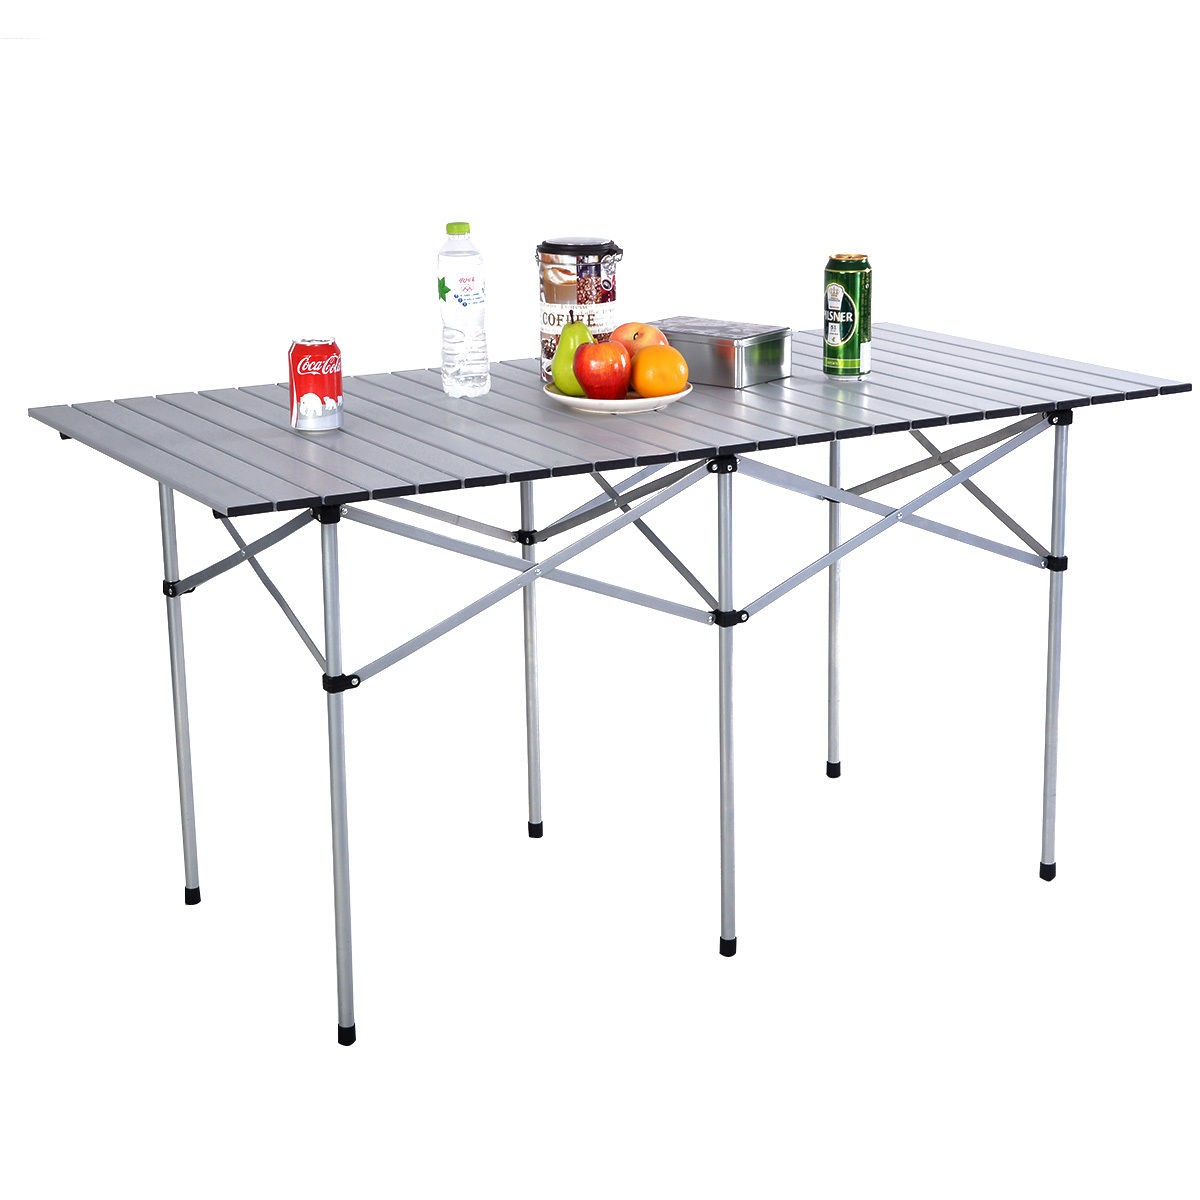 Portable Aluminum Roll Up Table Folding Camping Outdoor